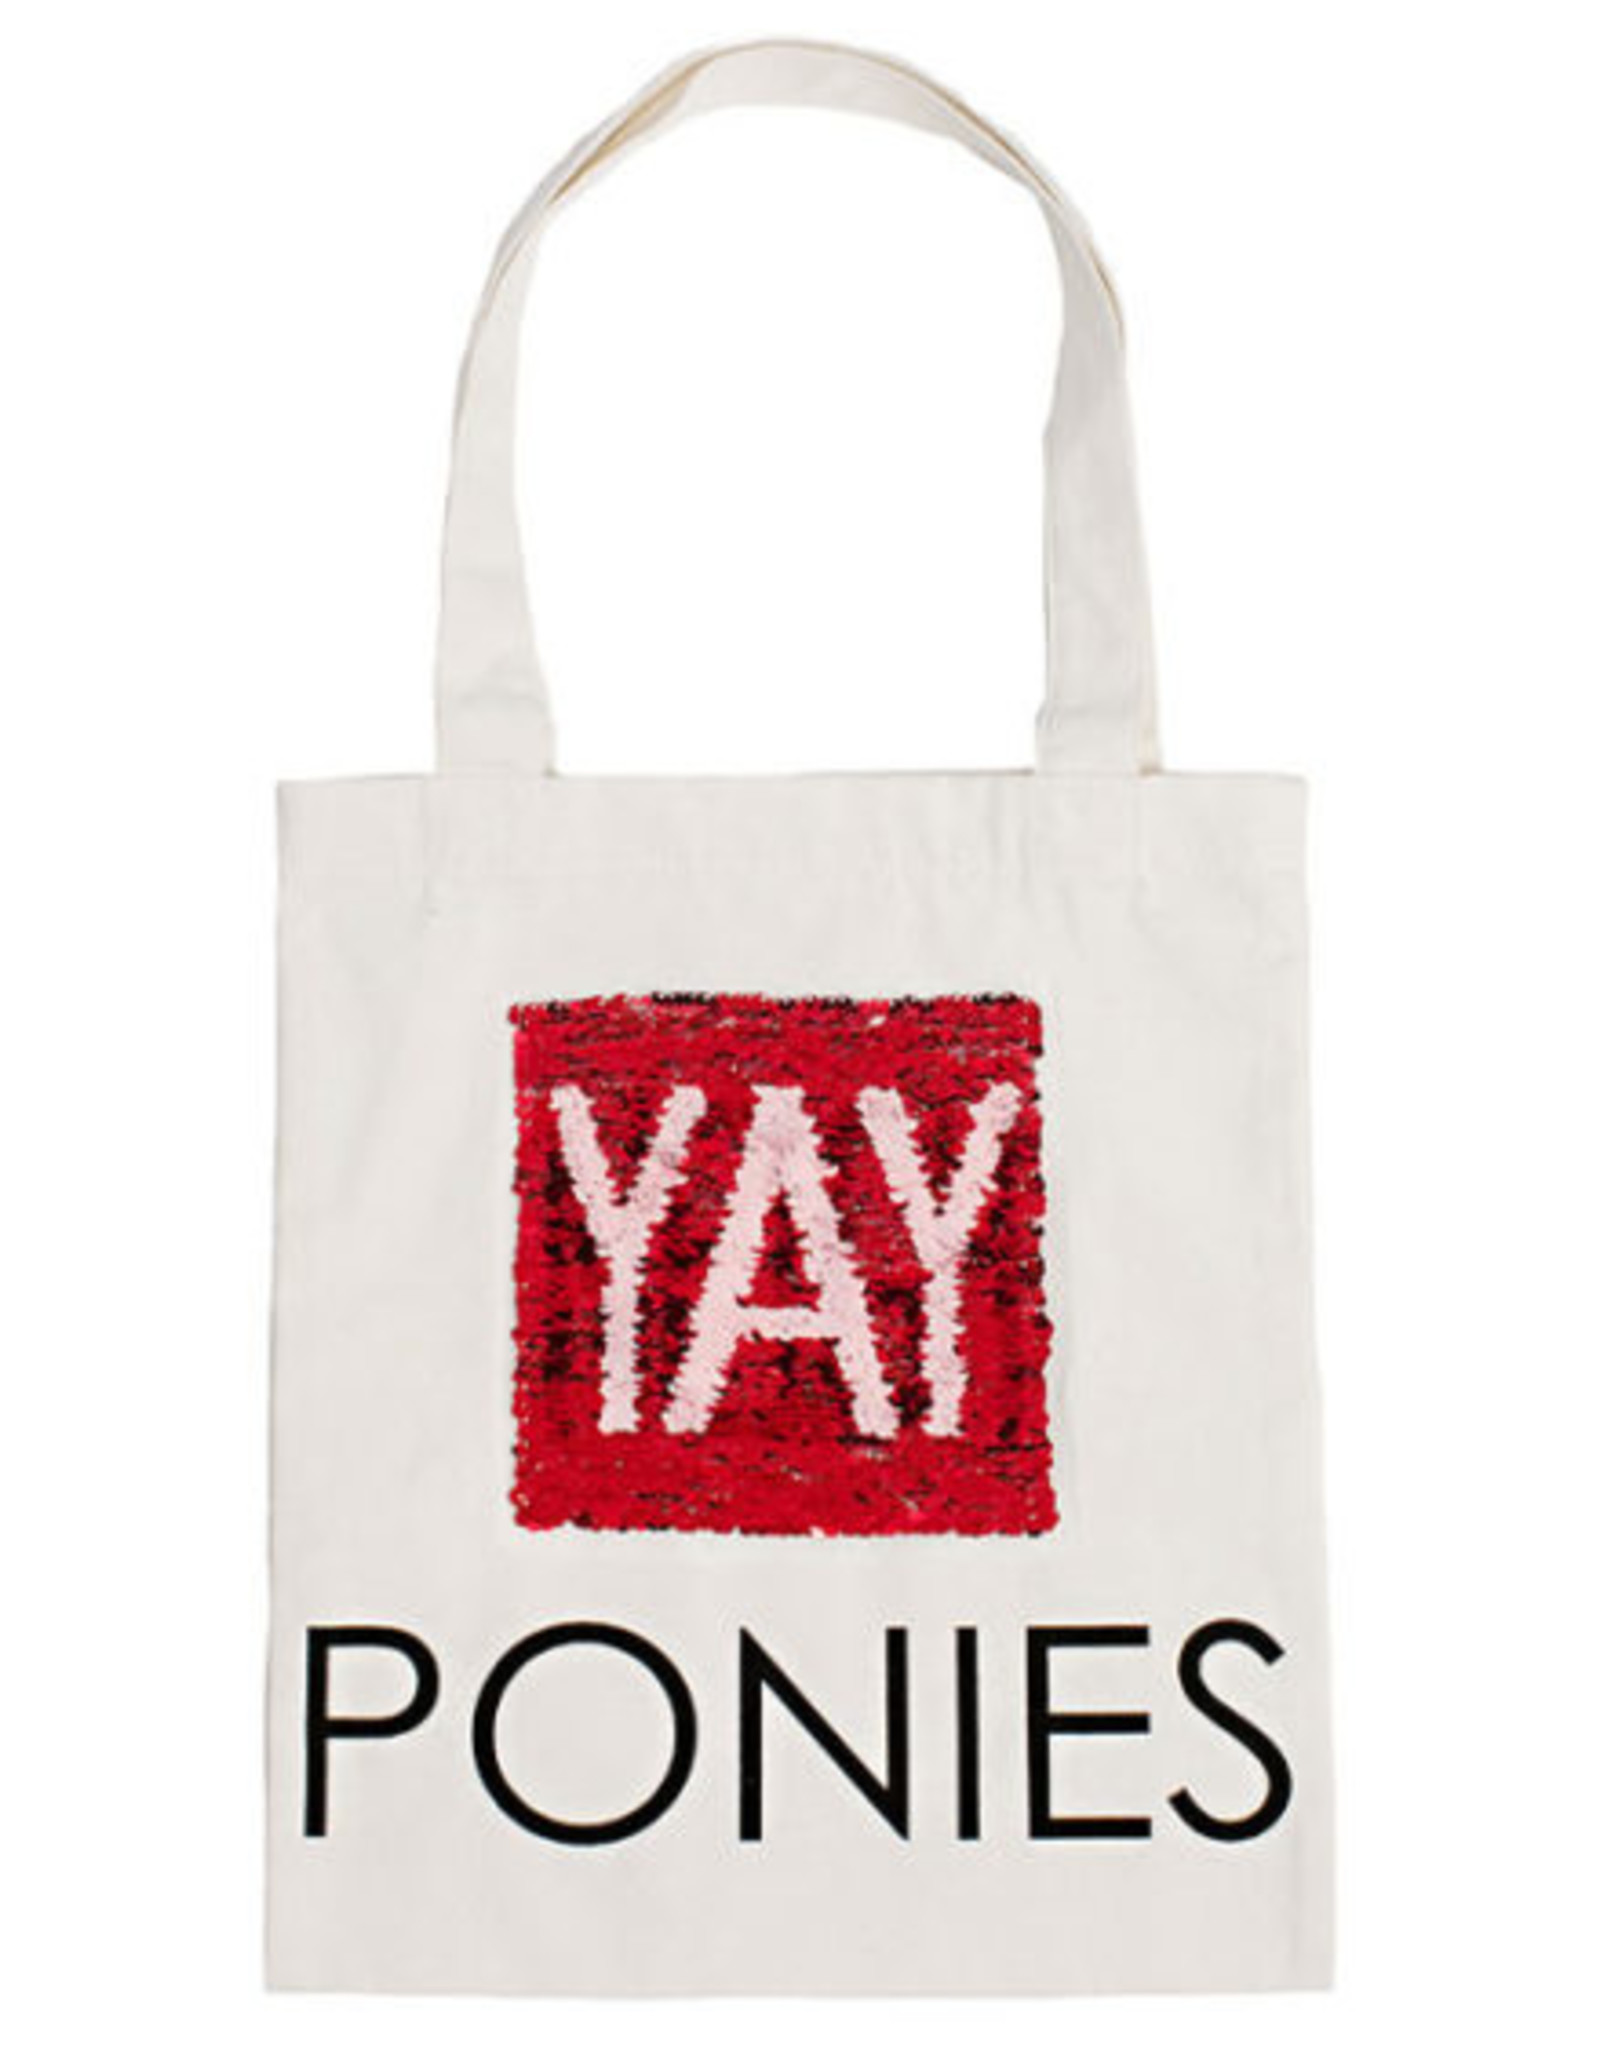 HORSEWARE IRELAND RECYCLED COTTON TOTE BAG